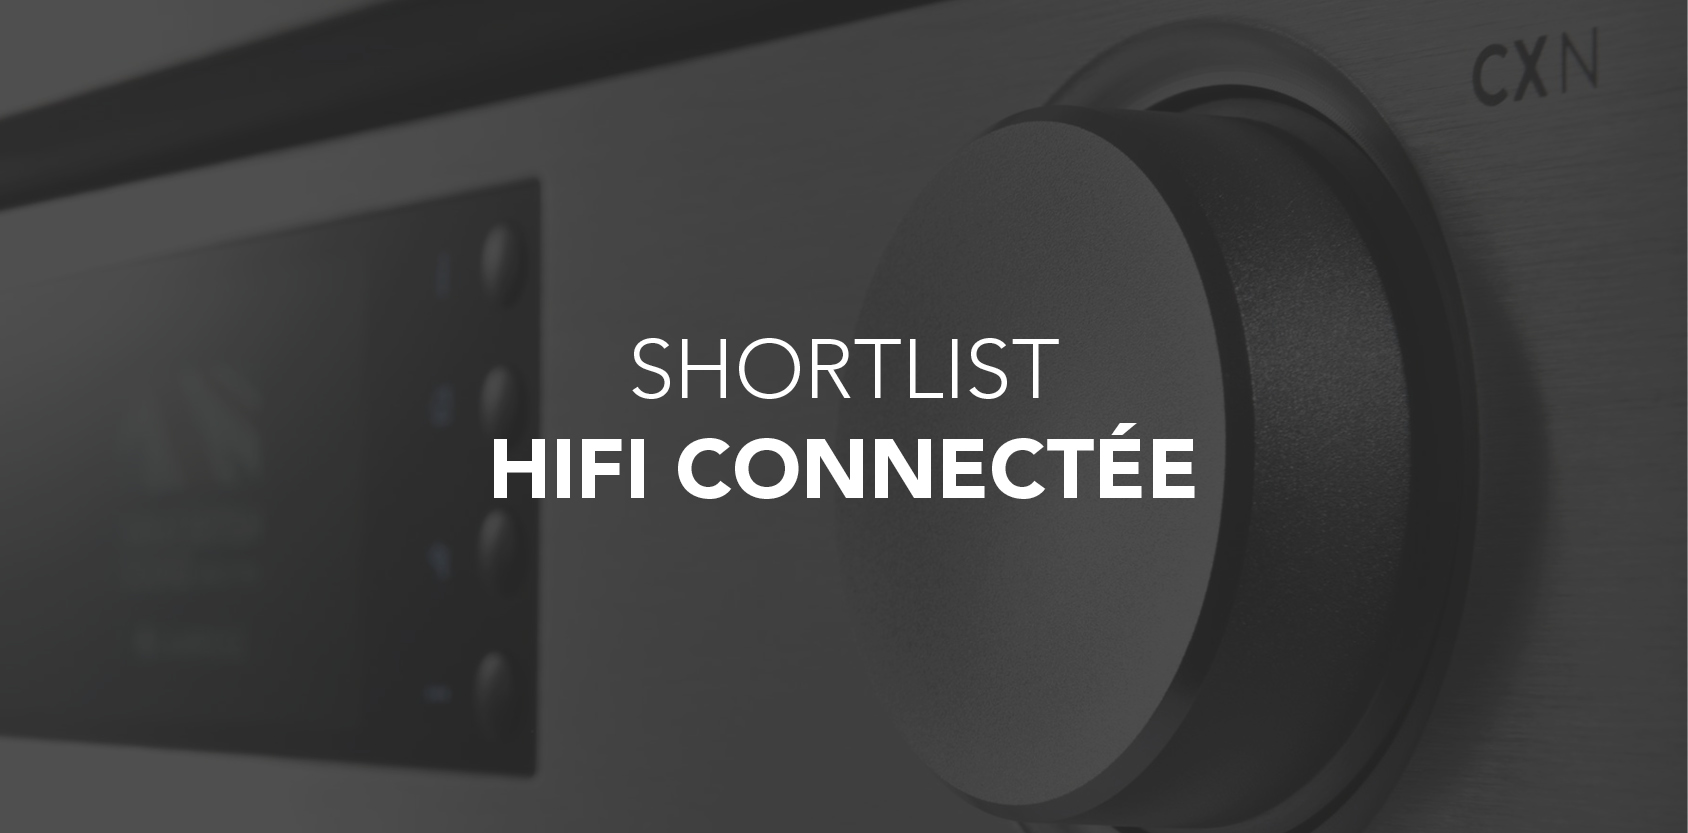 Br-Shortlist-HIFI-connectee